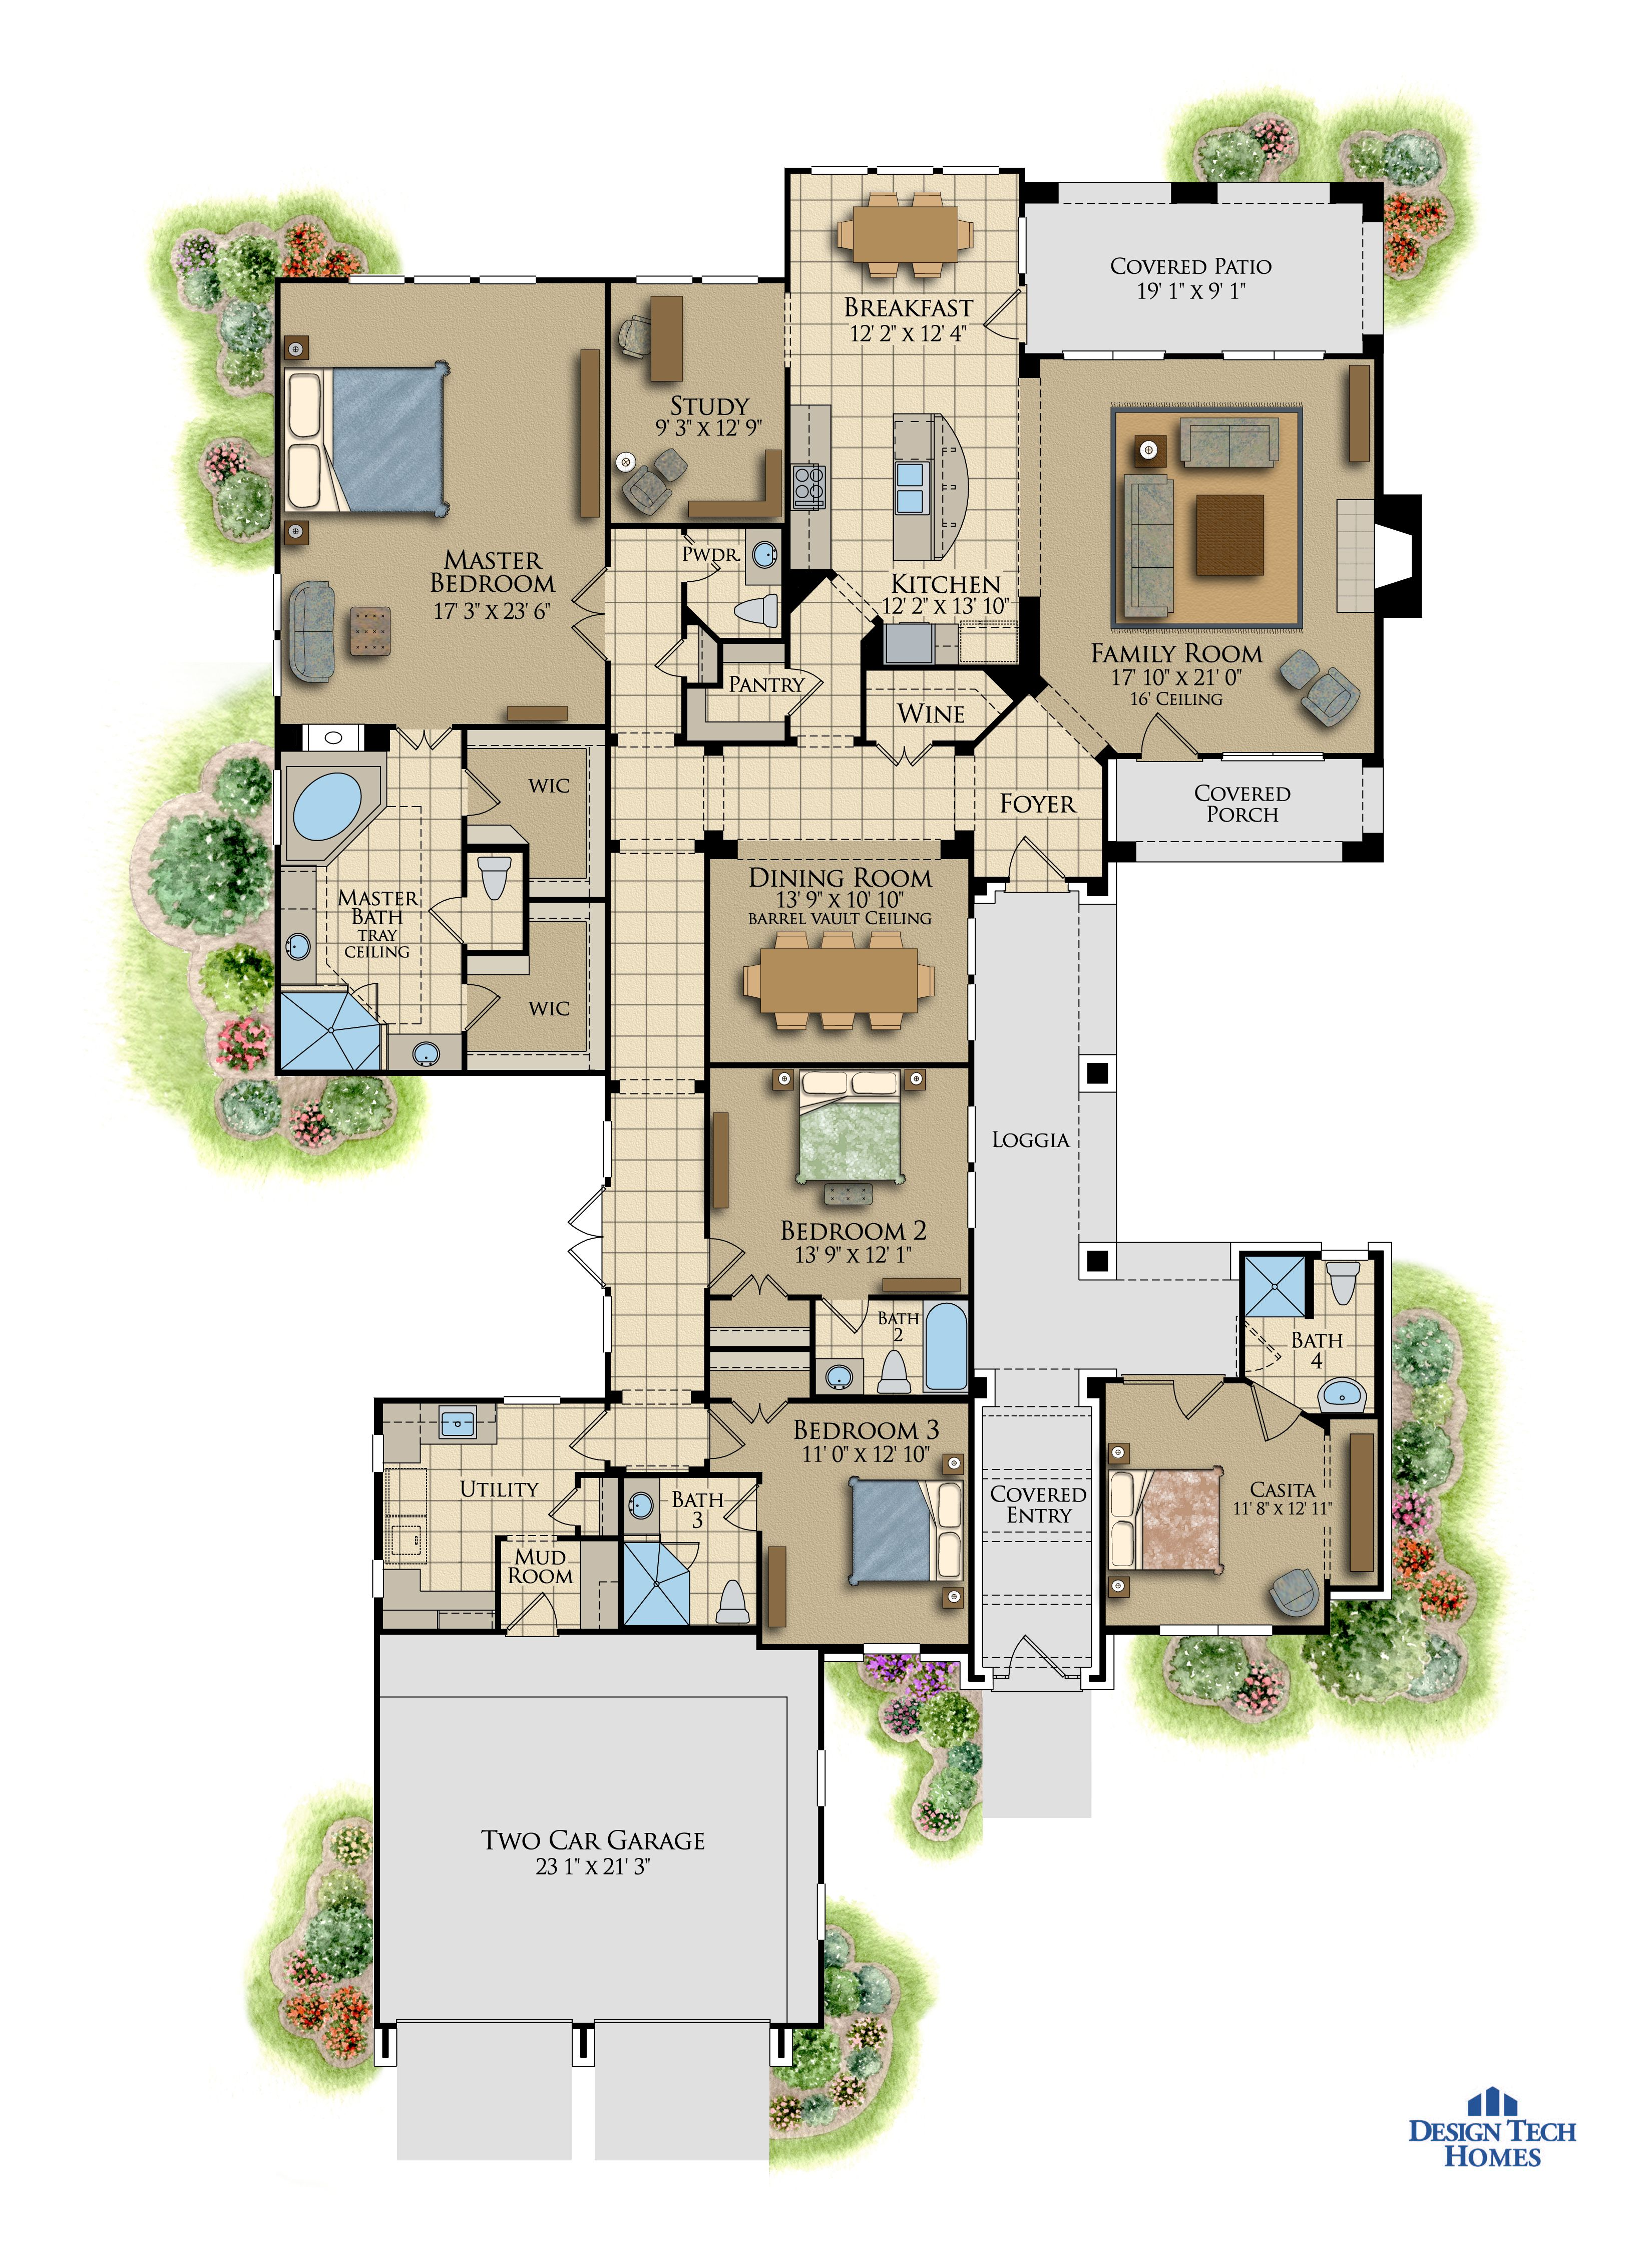 3,240 Sq Ft House Plan - 3 Bed 4.5 Bath, 1 Story - The Casa Lana ...